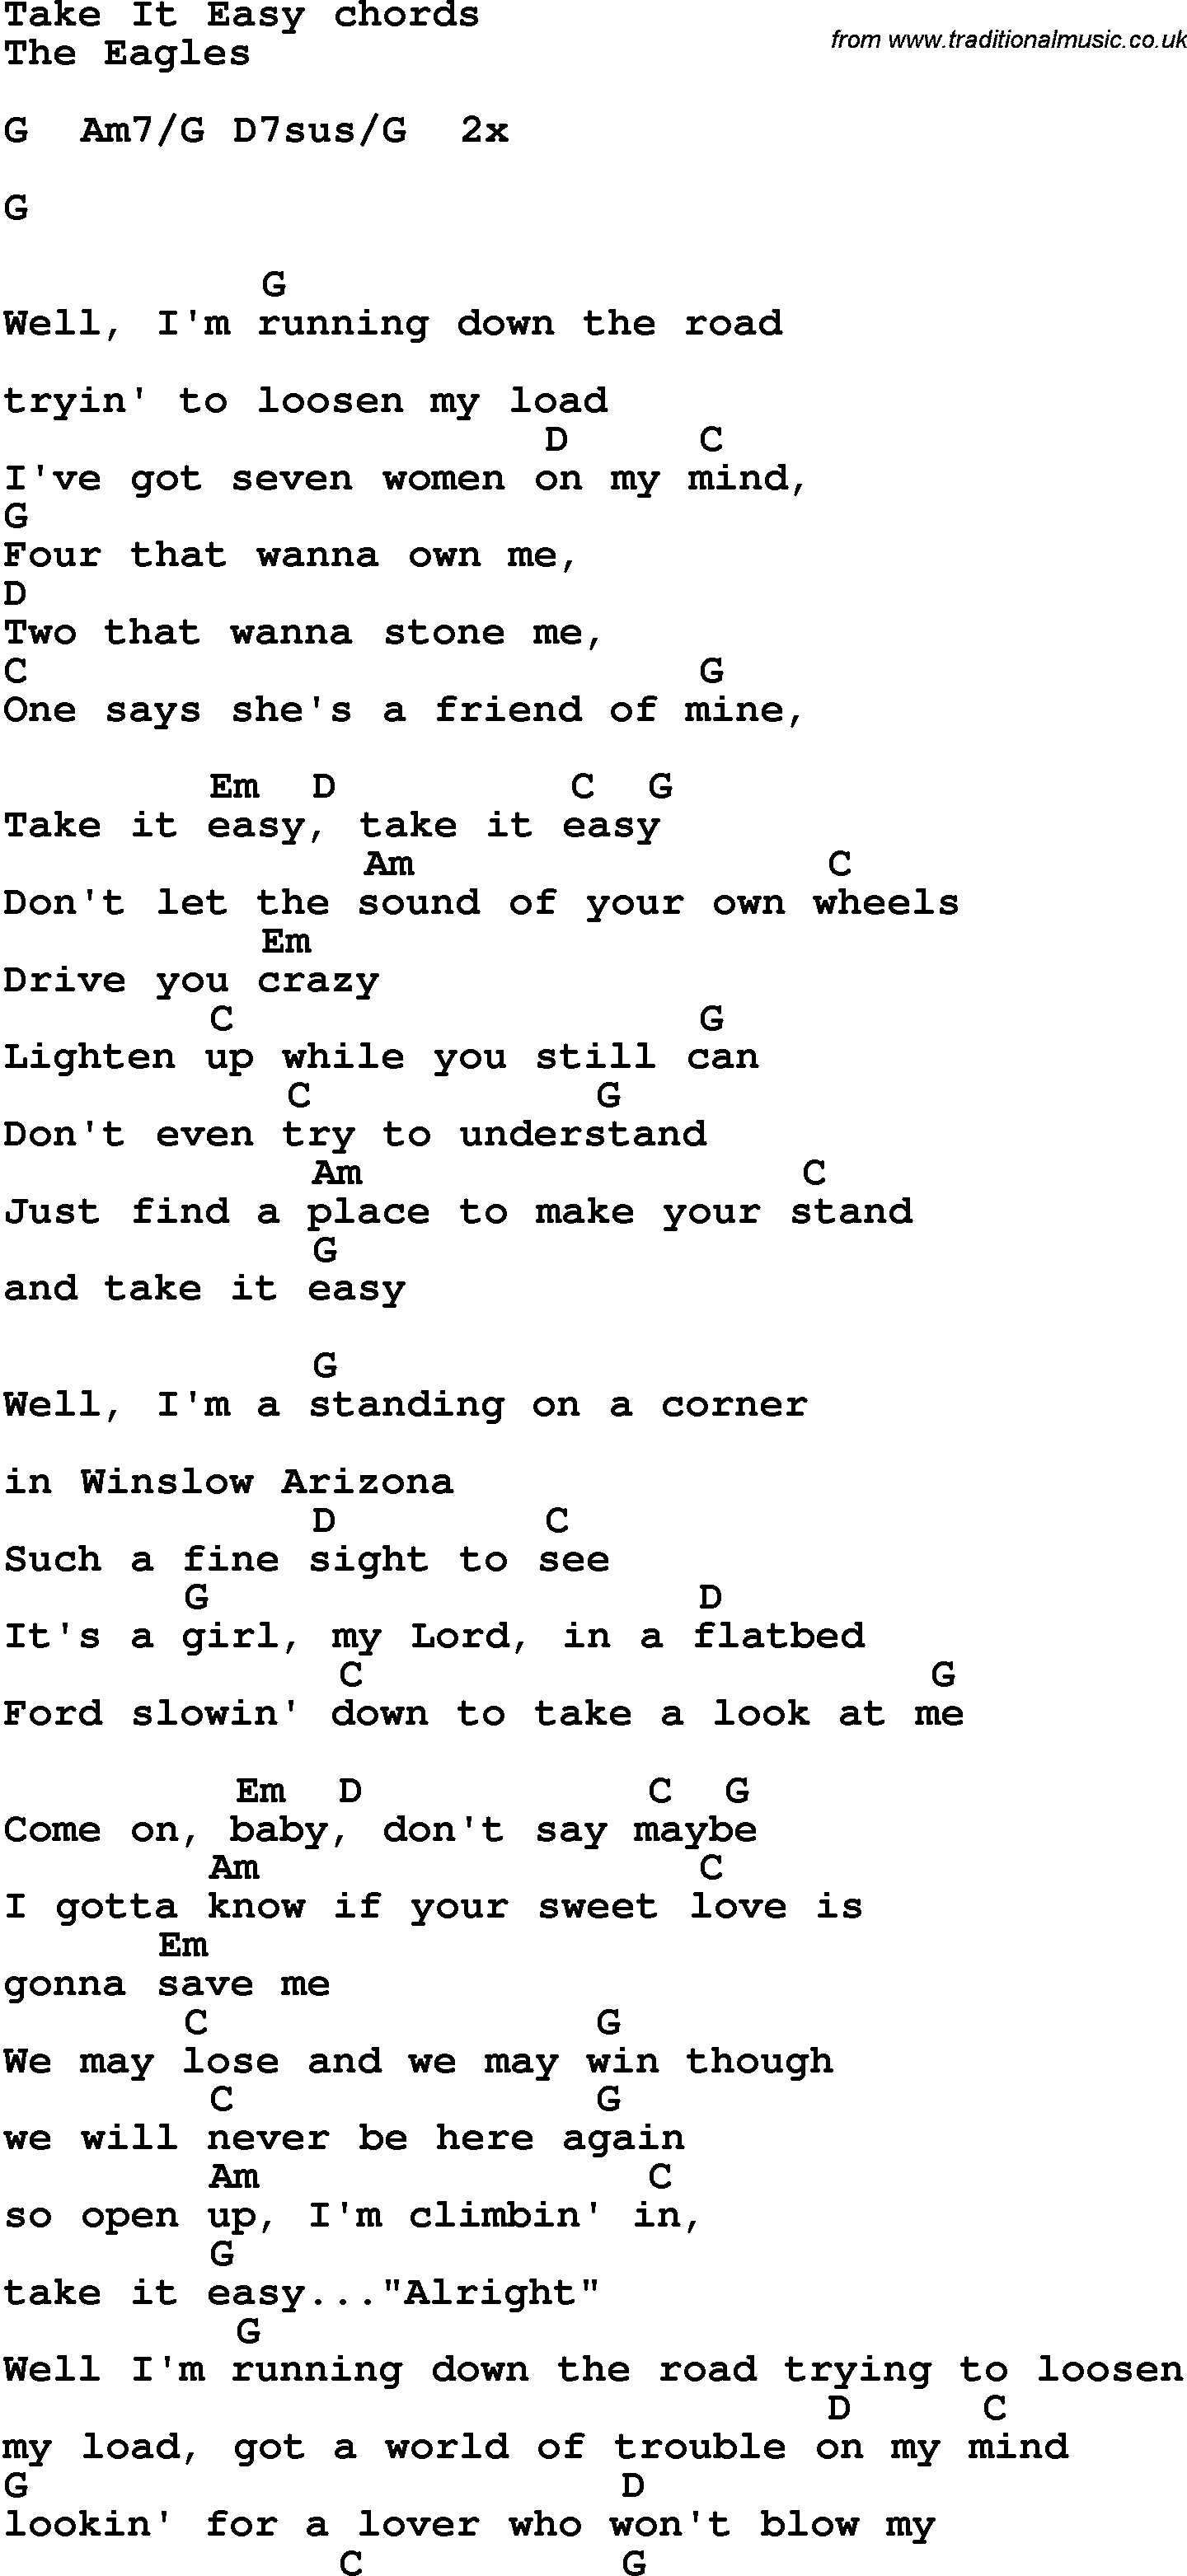 Song Lyrics With Guitar Chords For Take It Easy The Eagles